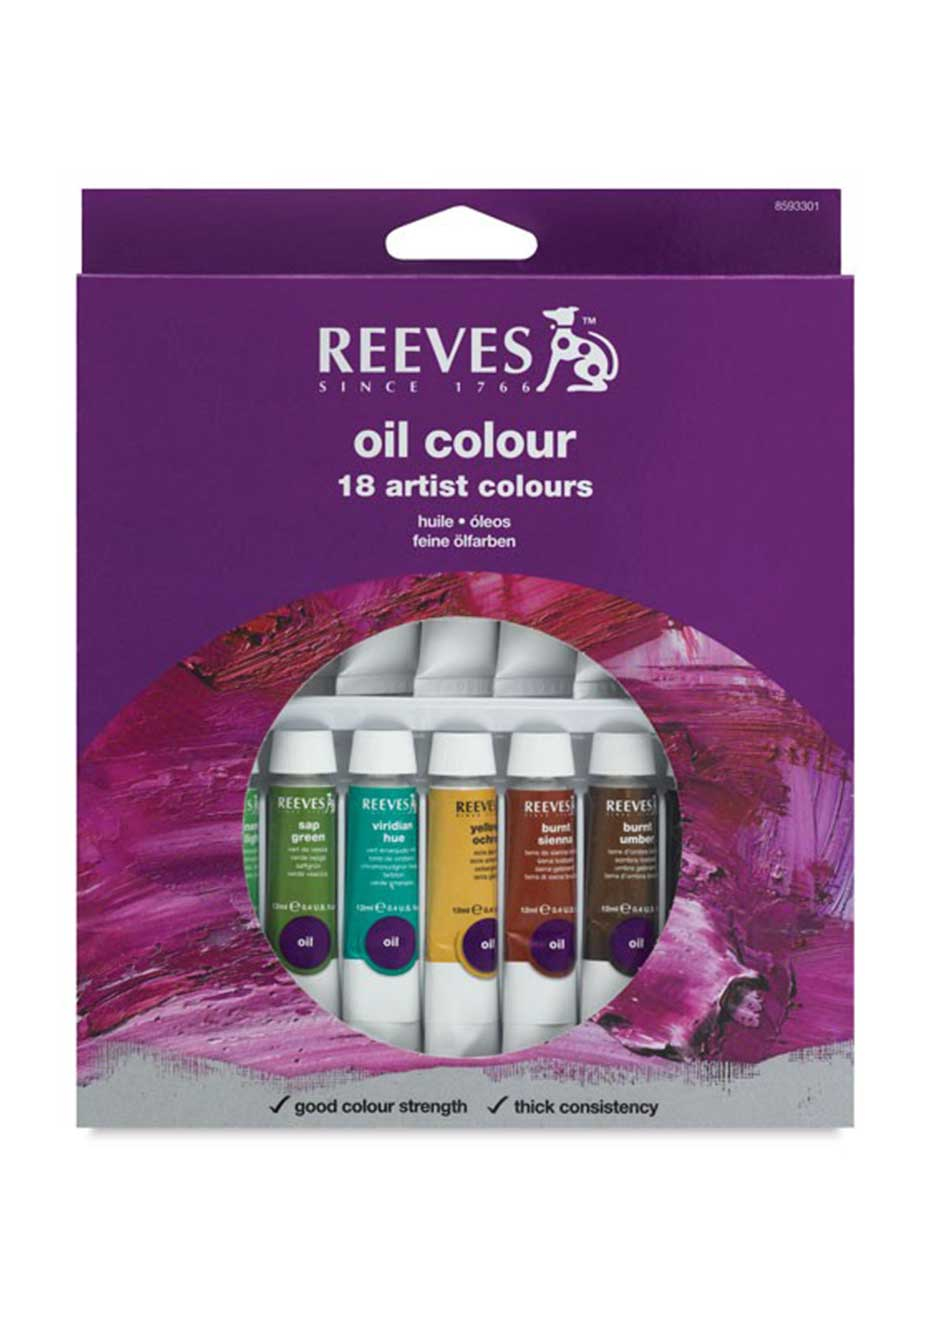 Reeves-oil-color-18